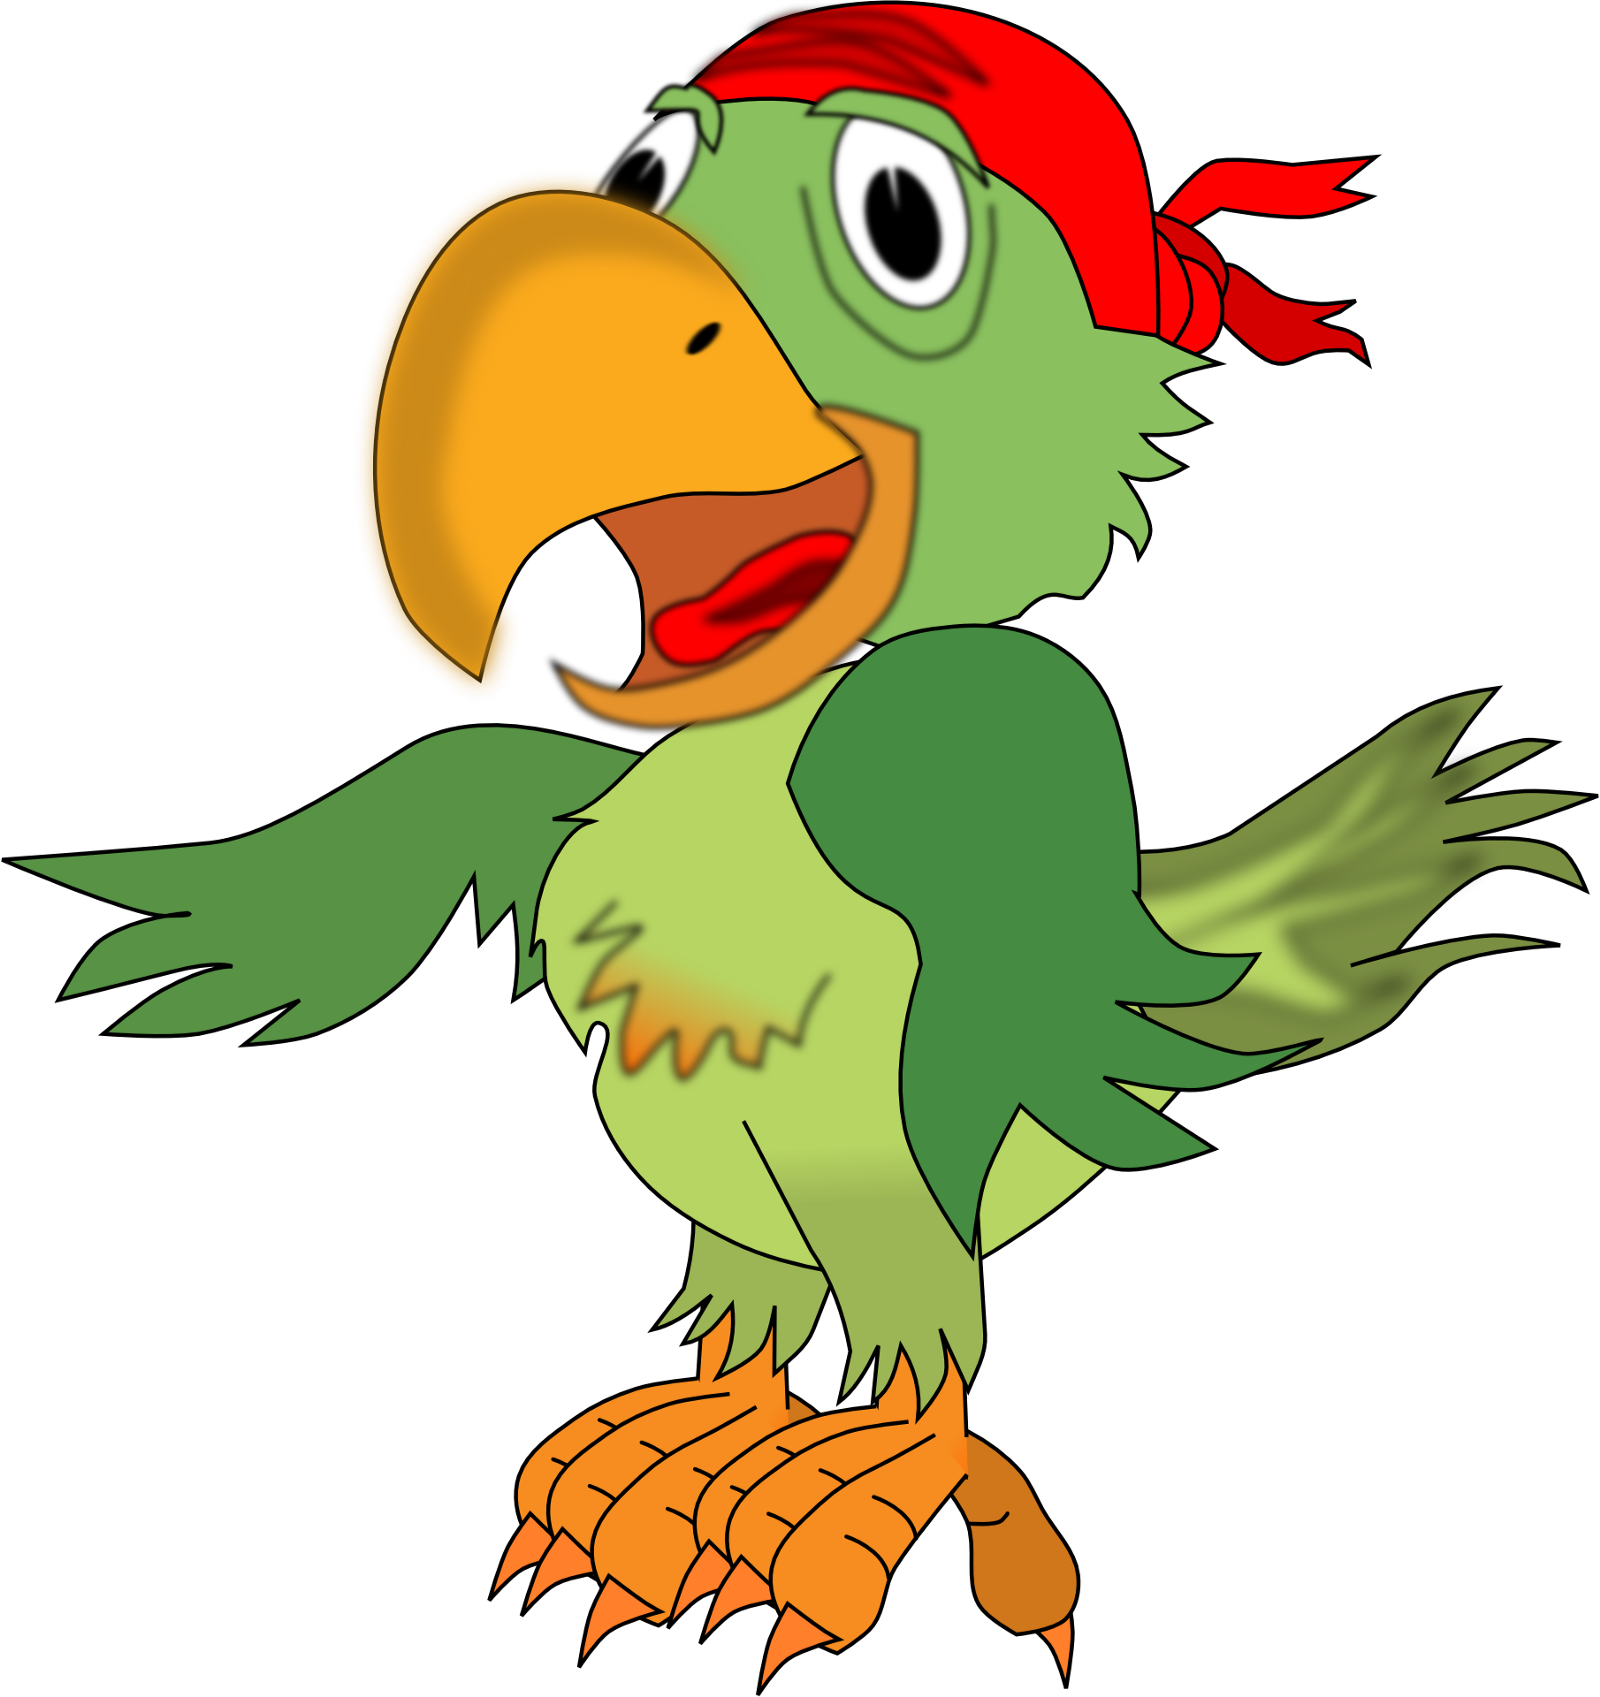 Parrot clipart beautiful parrot. Story of a motivational